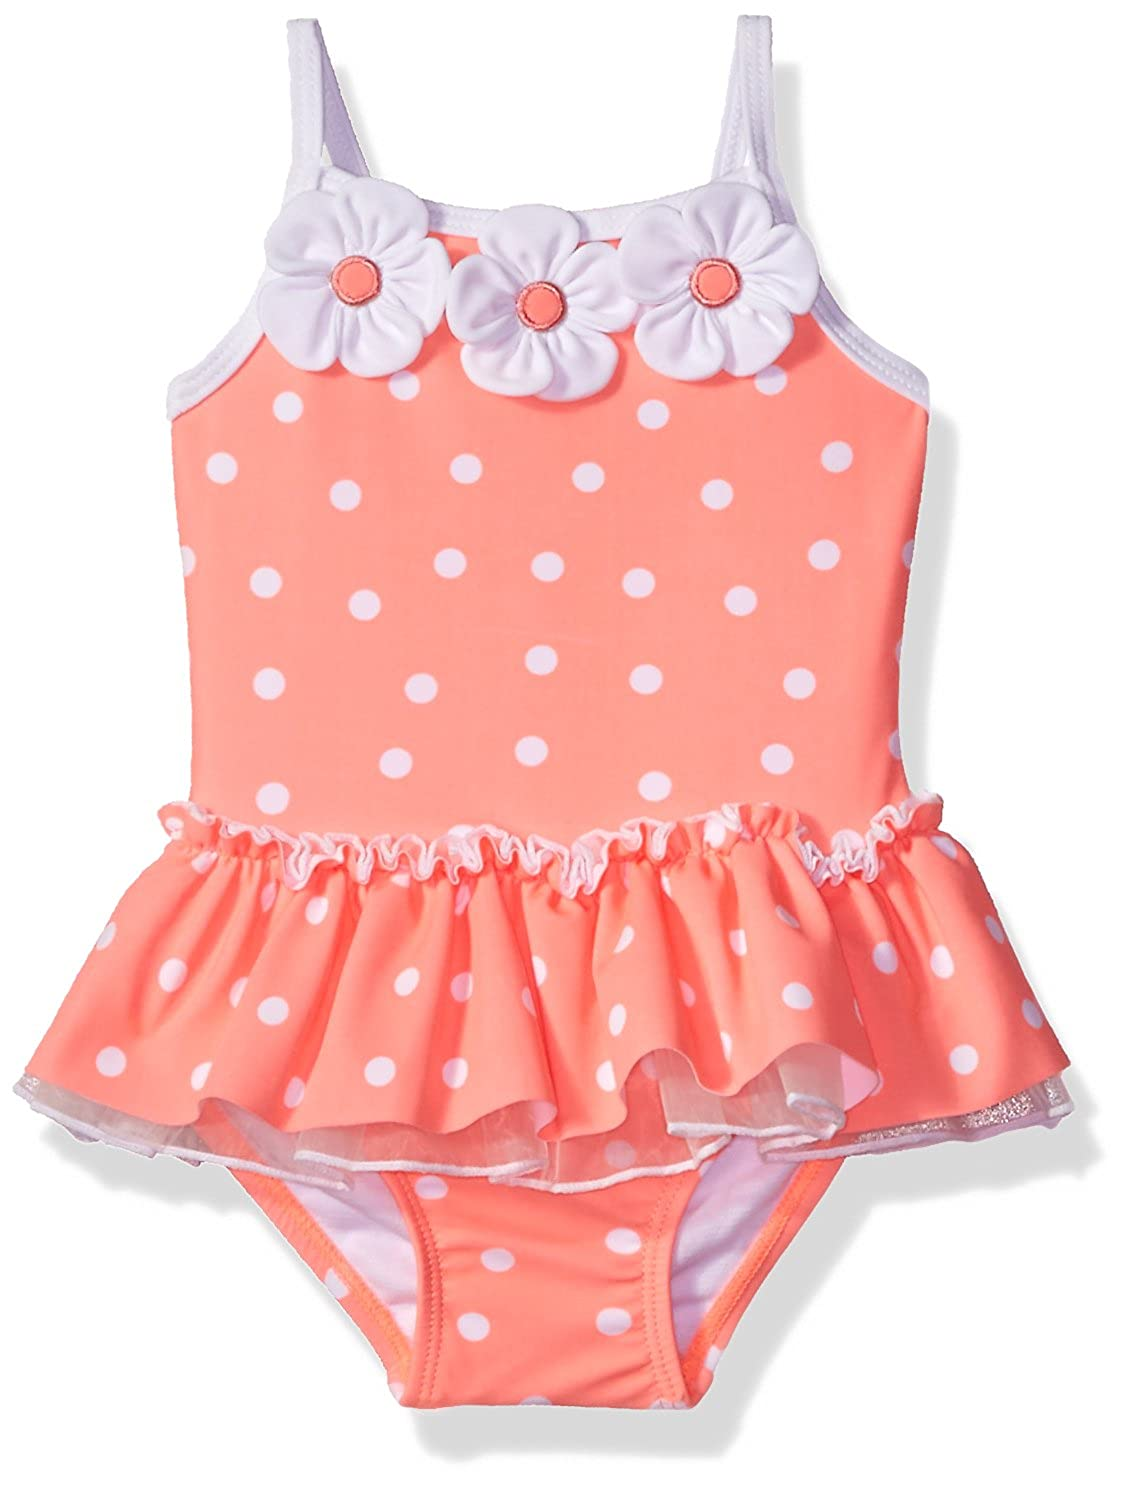 Little Me Baby Girls' UPF 50+ One Piece Swimsuit